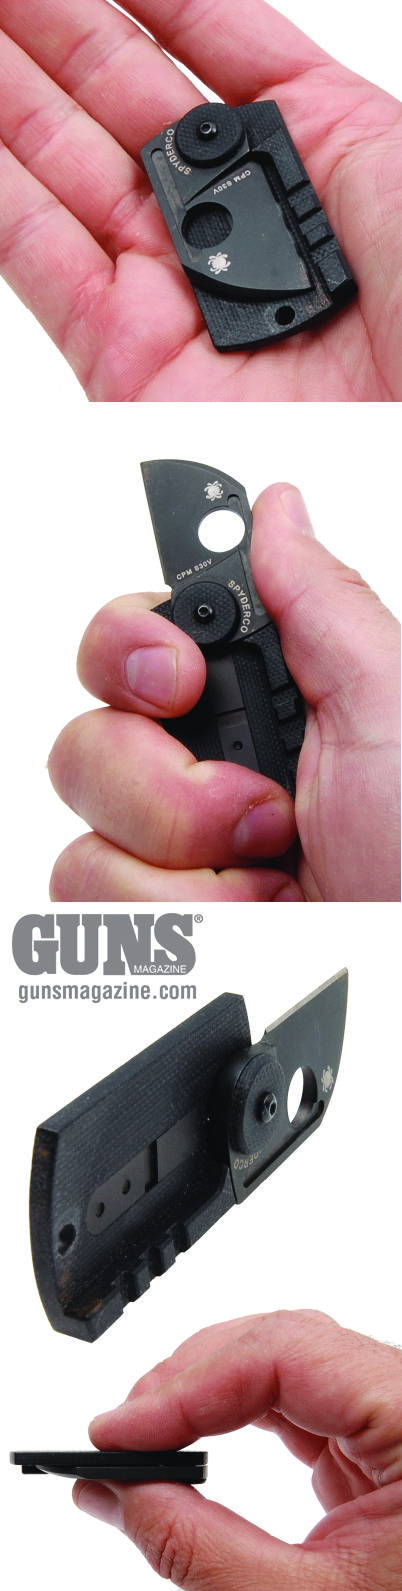 Exclusive: Photos of a Spyderco Dog Tag Folder | By Mark Kakkuri | This one's been riding around on my keychain for almost a year. Typical duties are opening mail, opening packages, and cutting stray strings off clothes. At less than an ounce in weight, it actually could be worn like a dog tag and therefore easily hidden. | © GUNS Magazine 2016